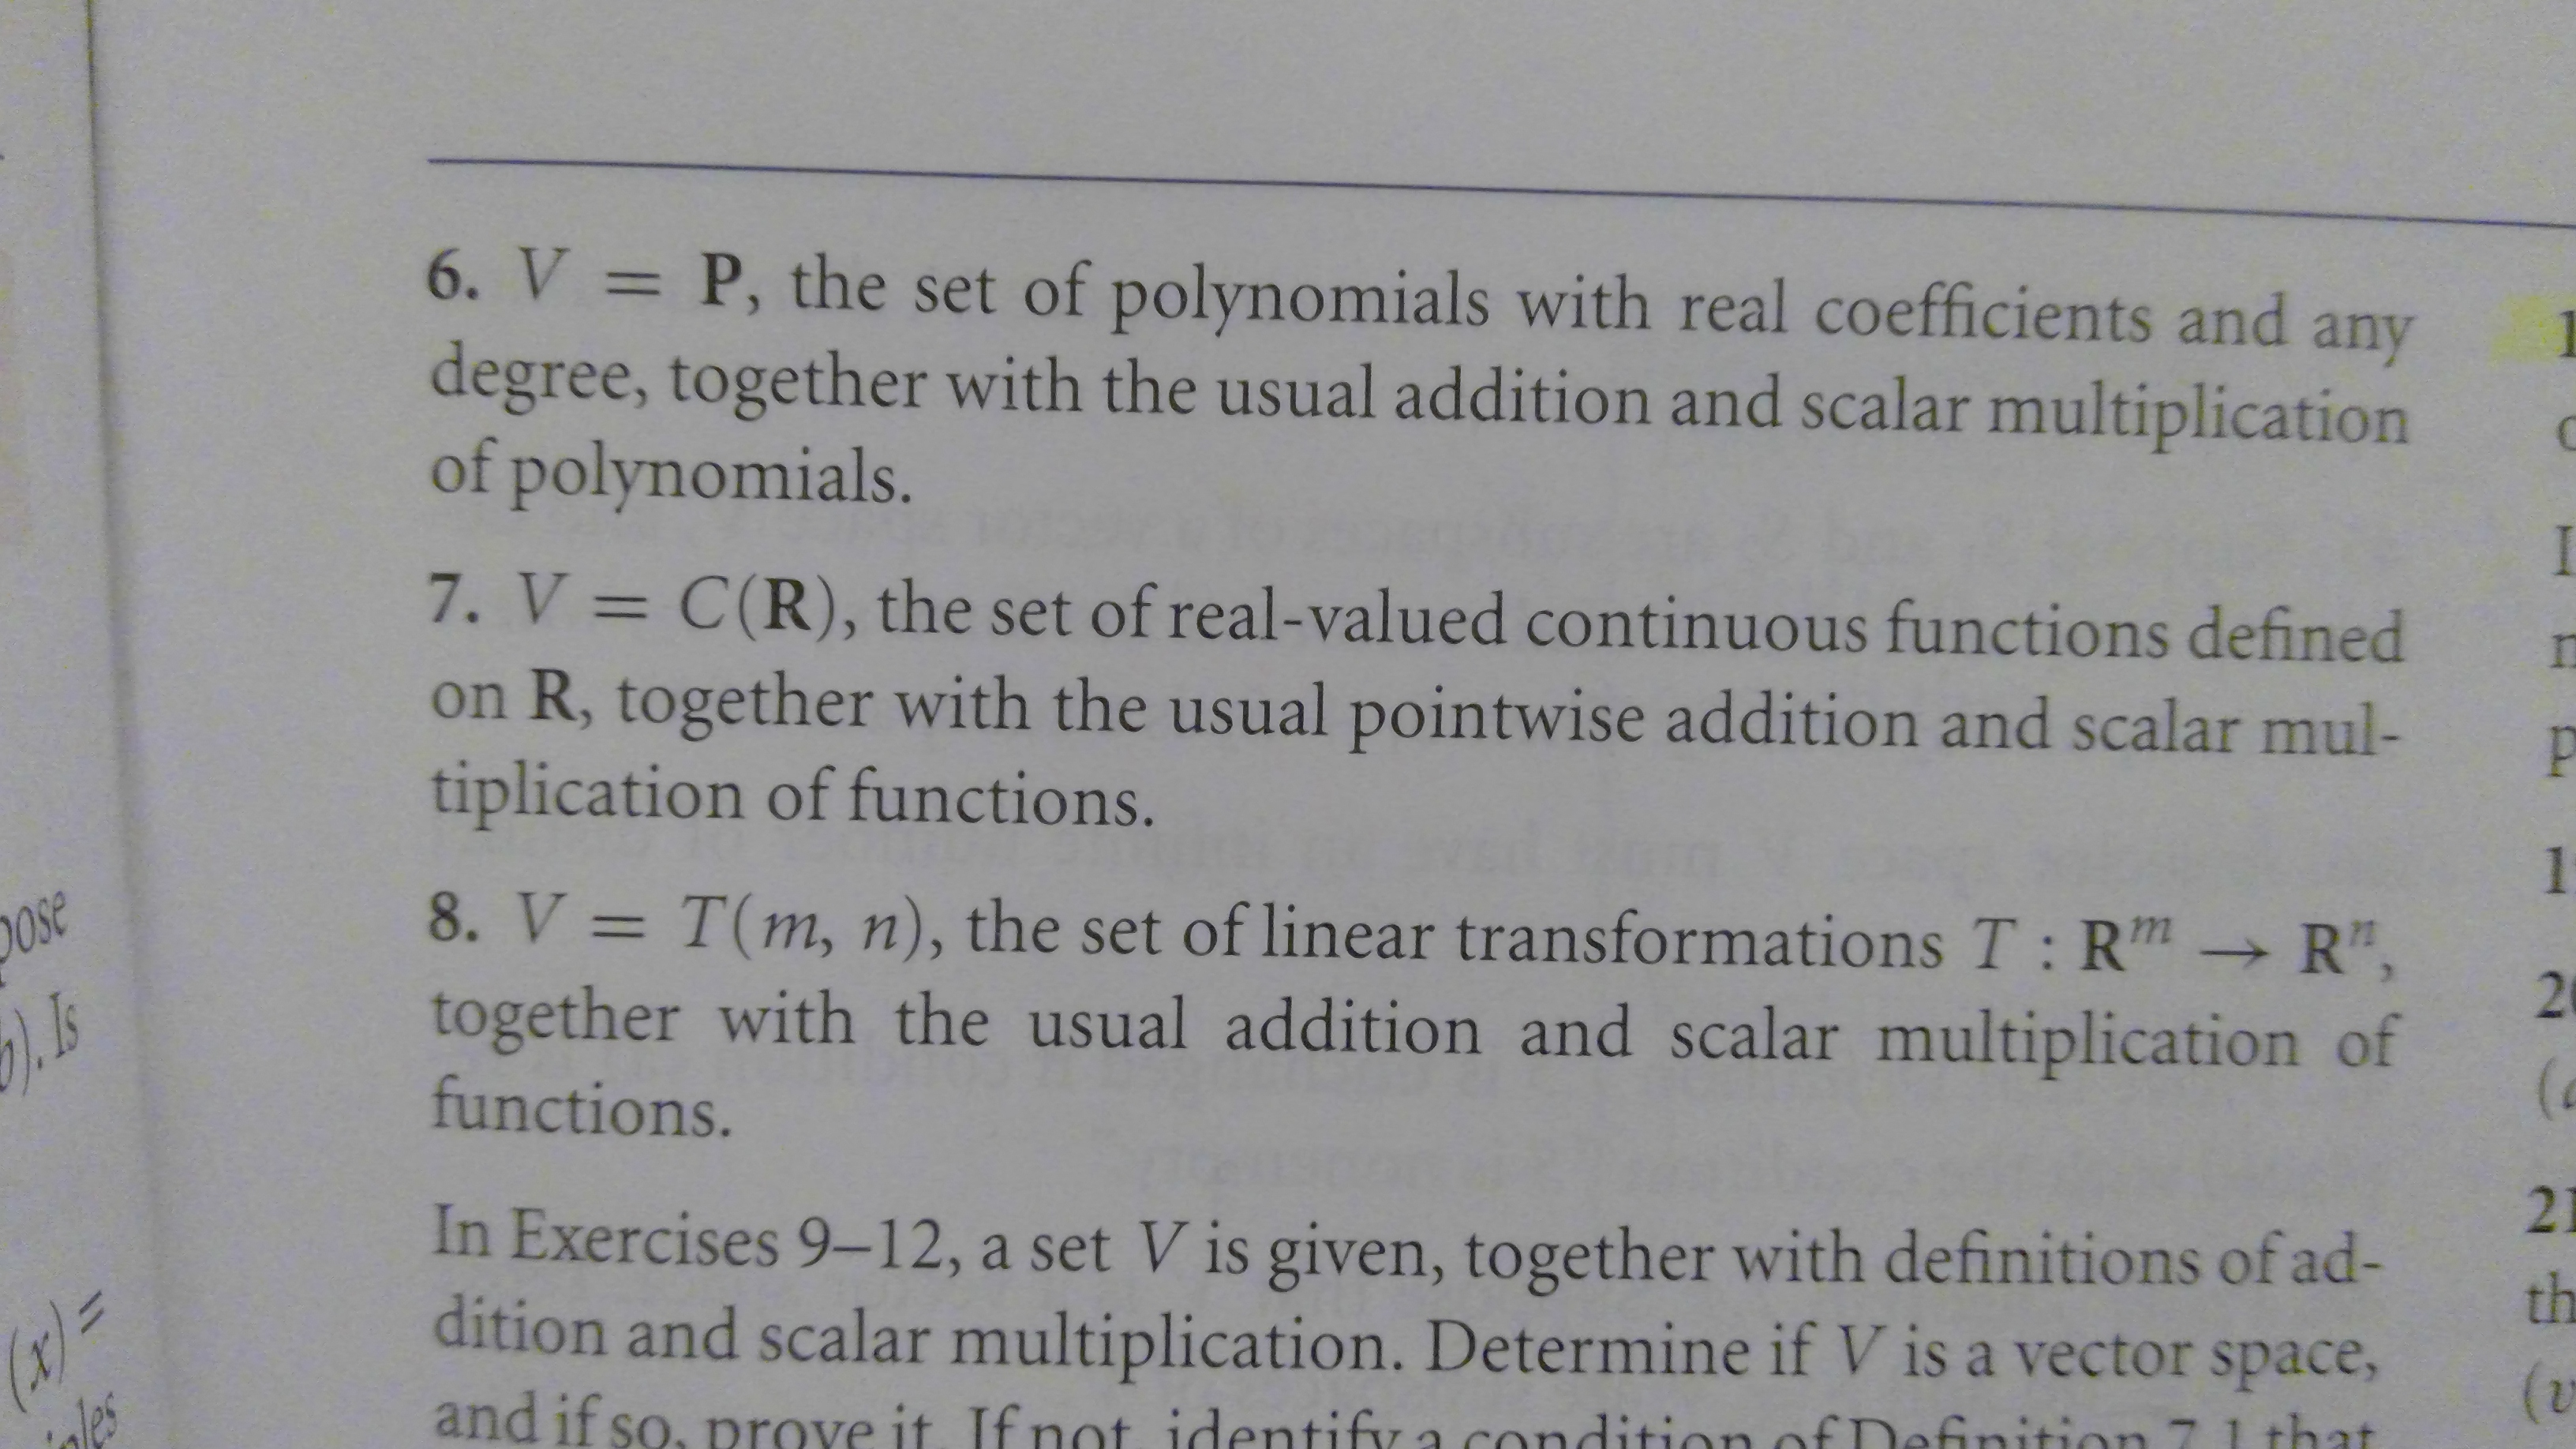 "6. V P, the set of polynomials with real coefficients and degree, together with the usual addition and scalar multiplication of polynomials. 11 any 7. V = C(R), the set of real-valued continuous functions defined on R, together with the usual pointwise addition and scalar mul- tiplication of functions. P 8. V T(m, n), the set of linear transformations T: Rm R"", together with the usual addition and scalar multiplication of functions. Ose 1 In Exercises 9-12, a set V is given, together with definitions of ad- dition and scalar multiplication. Determine if V is a vector space, r= nles 21 th and if so, prove it. If not identify a (v inition that 29"